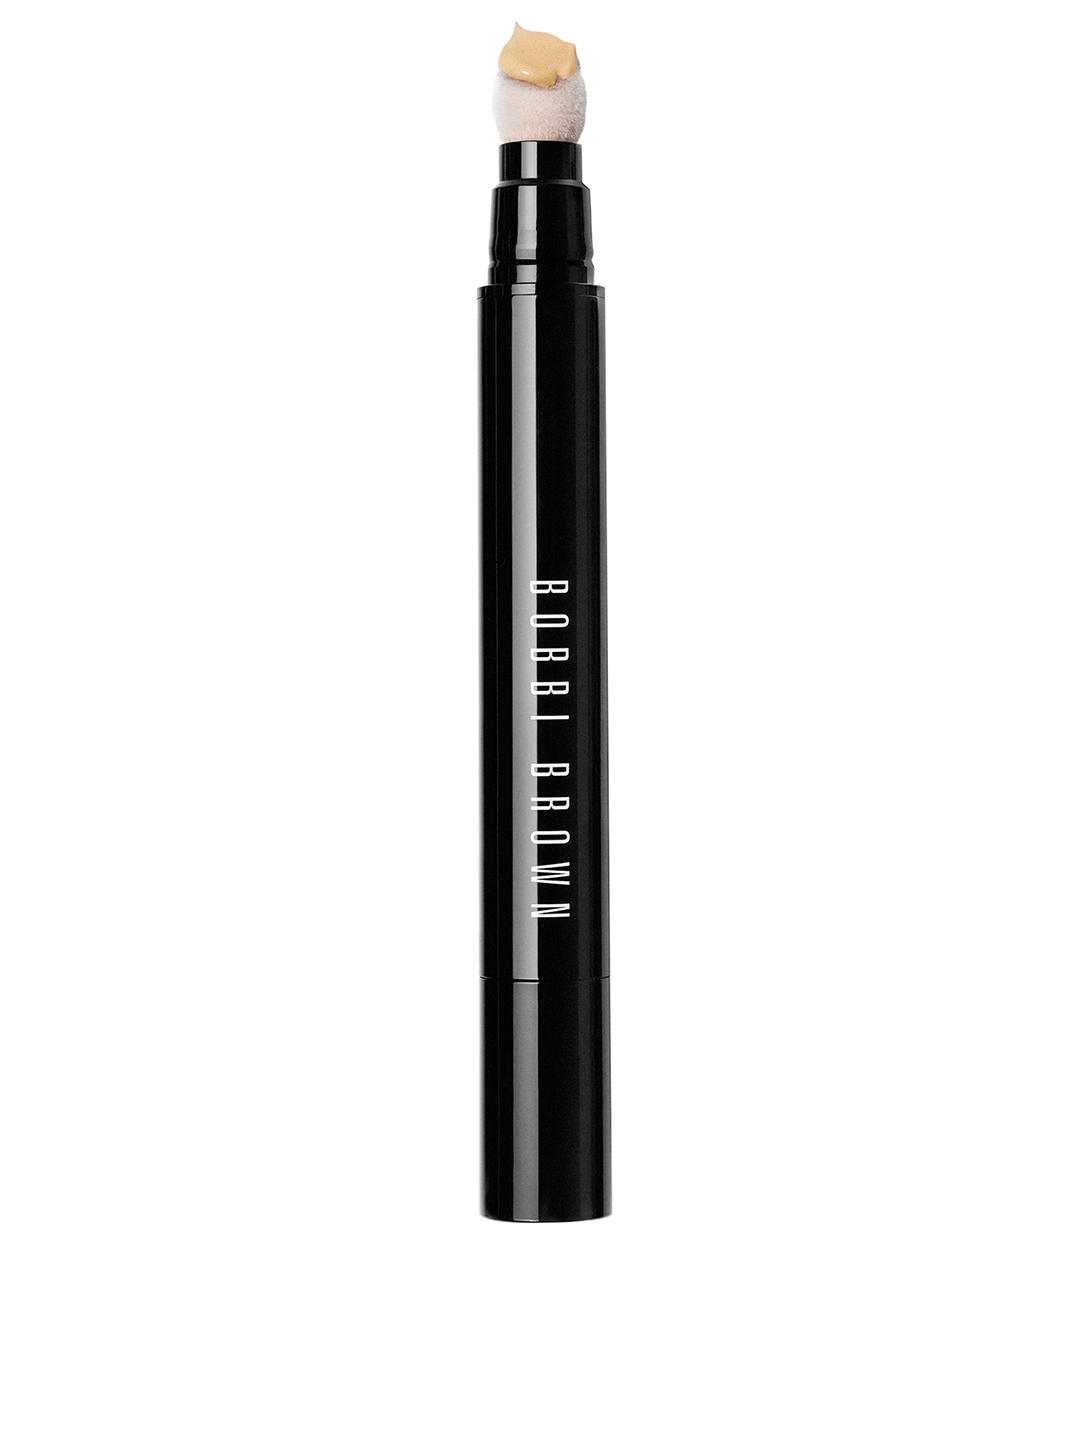 BOBBI BROWN Stylo retouche perfection teint Beauté Écru